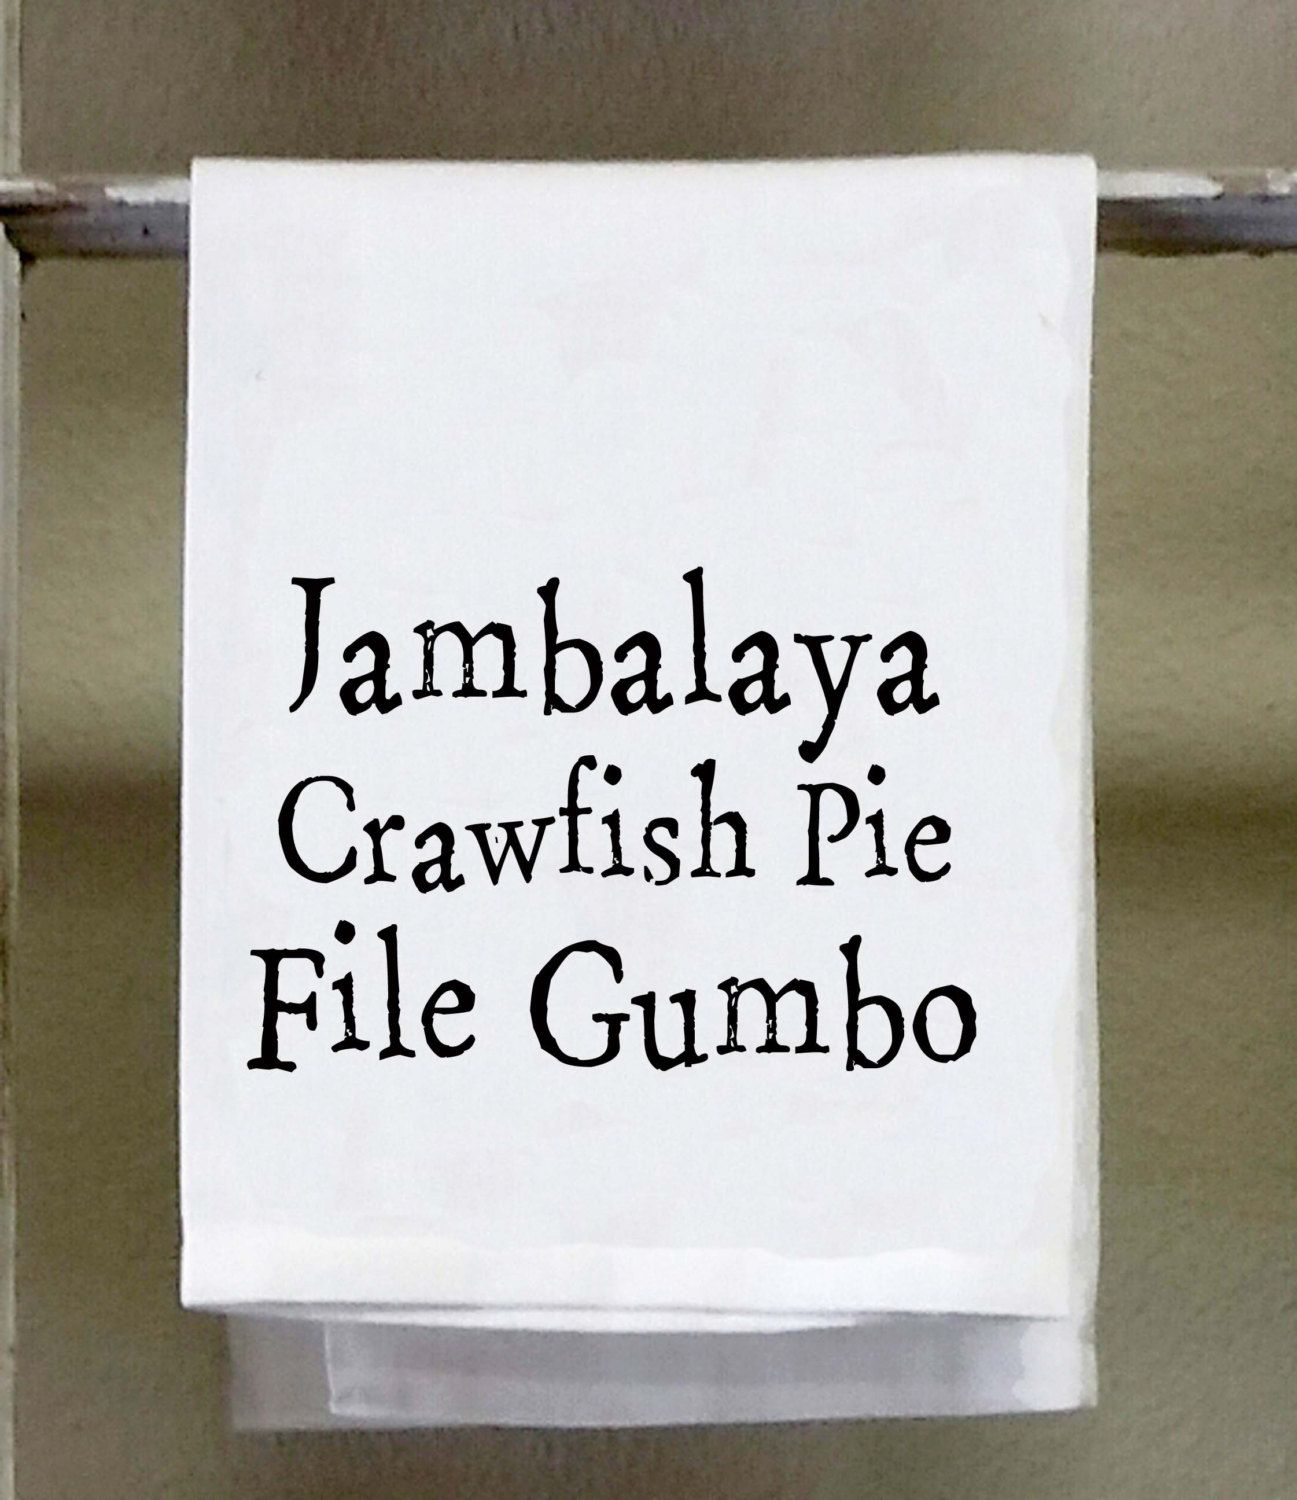 kitchen towel dish towel jambalaya crawfish pie file gumbo funny kitchen - Funny Kitchen Towels